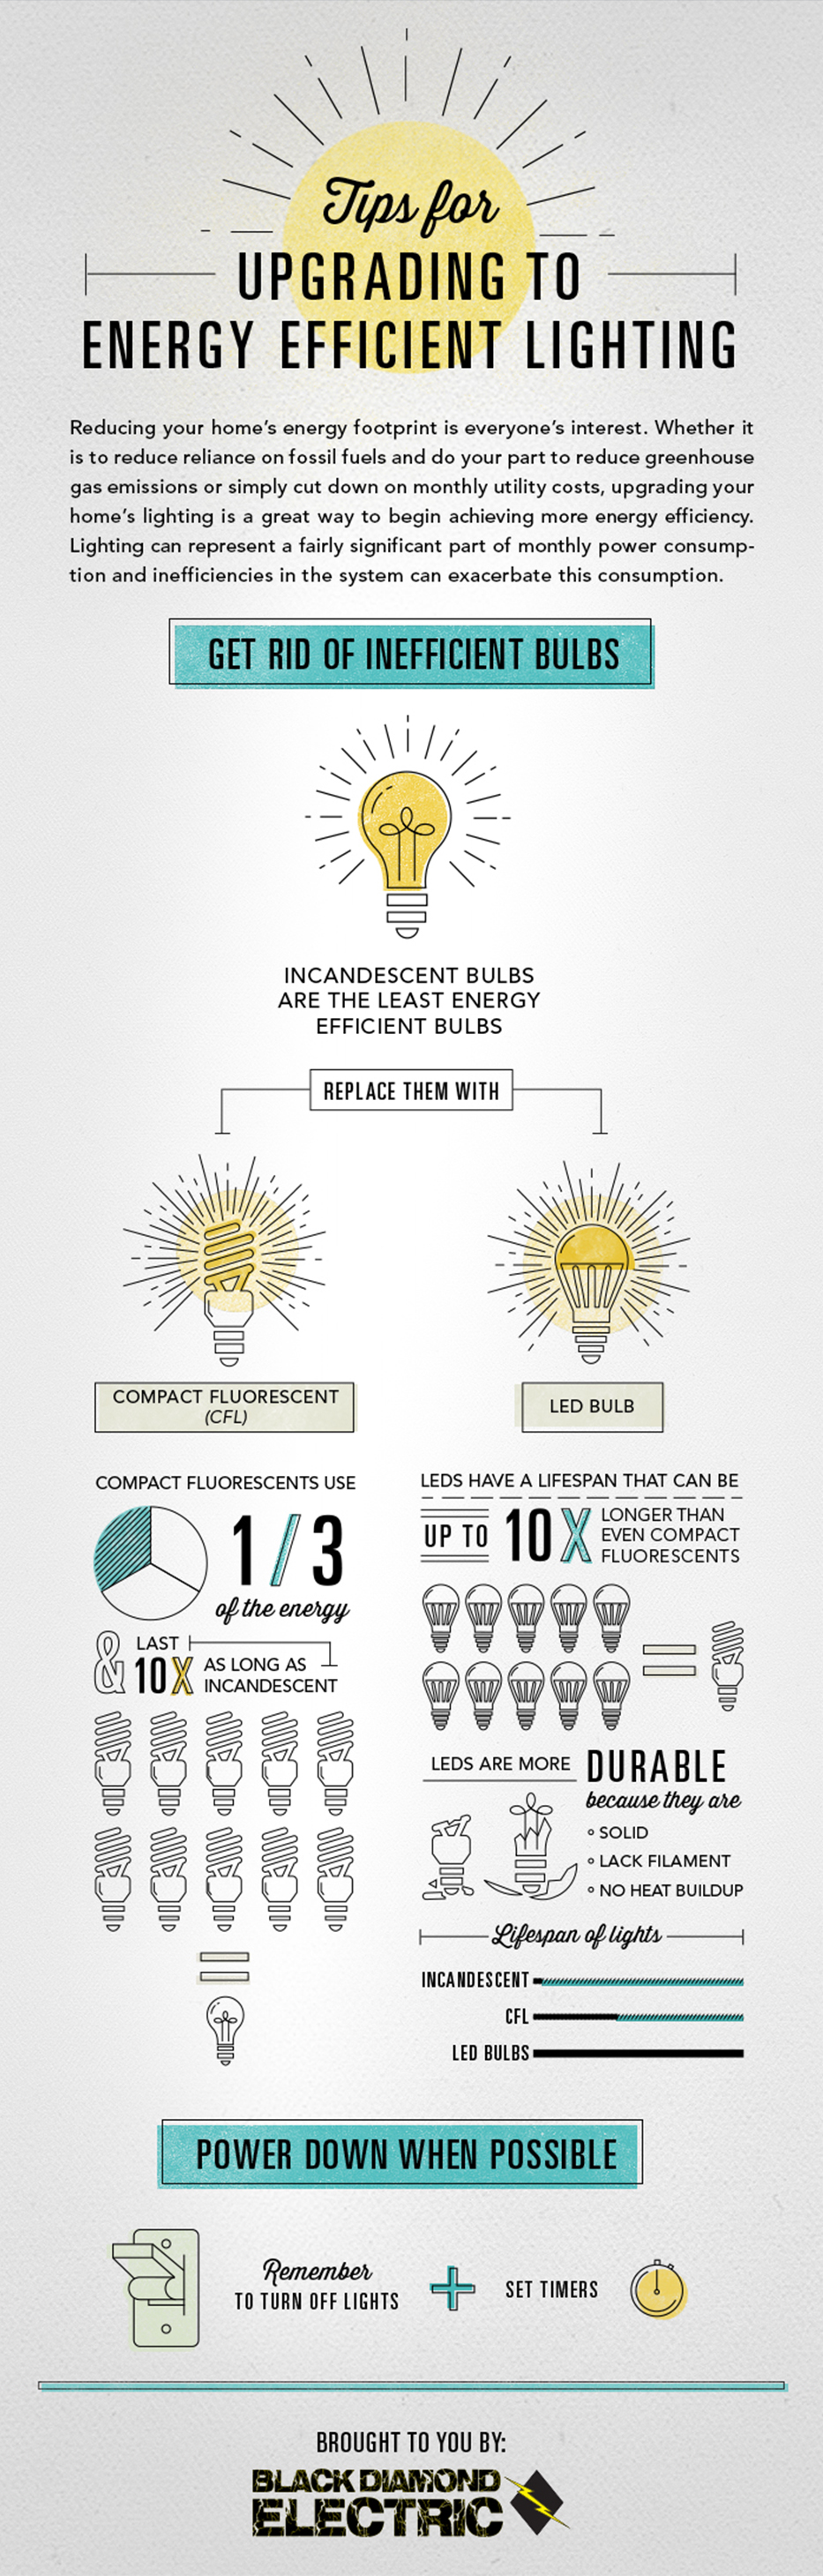 Lighting-Infographic